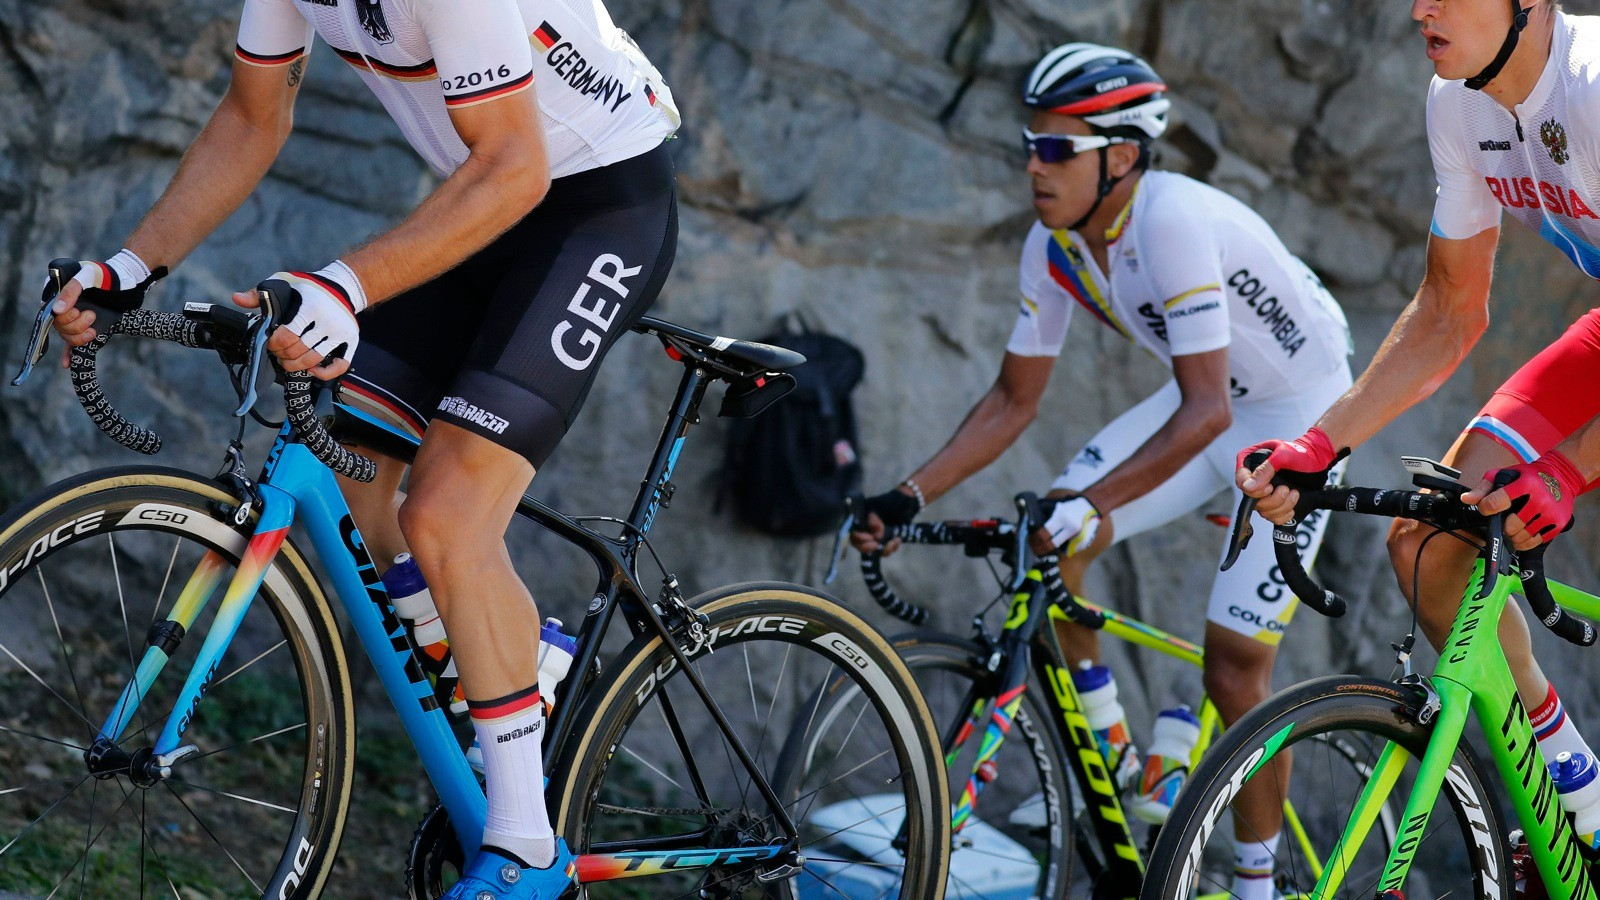 Giant, Scott and Canyon all provided special paint jobs for the Olympics